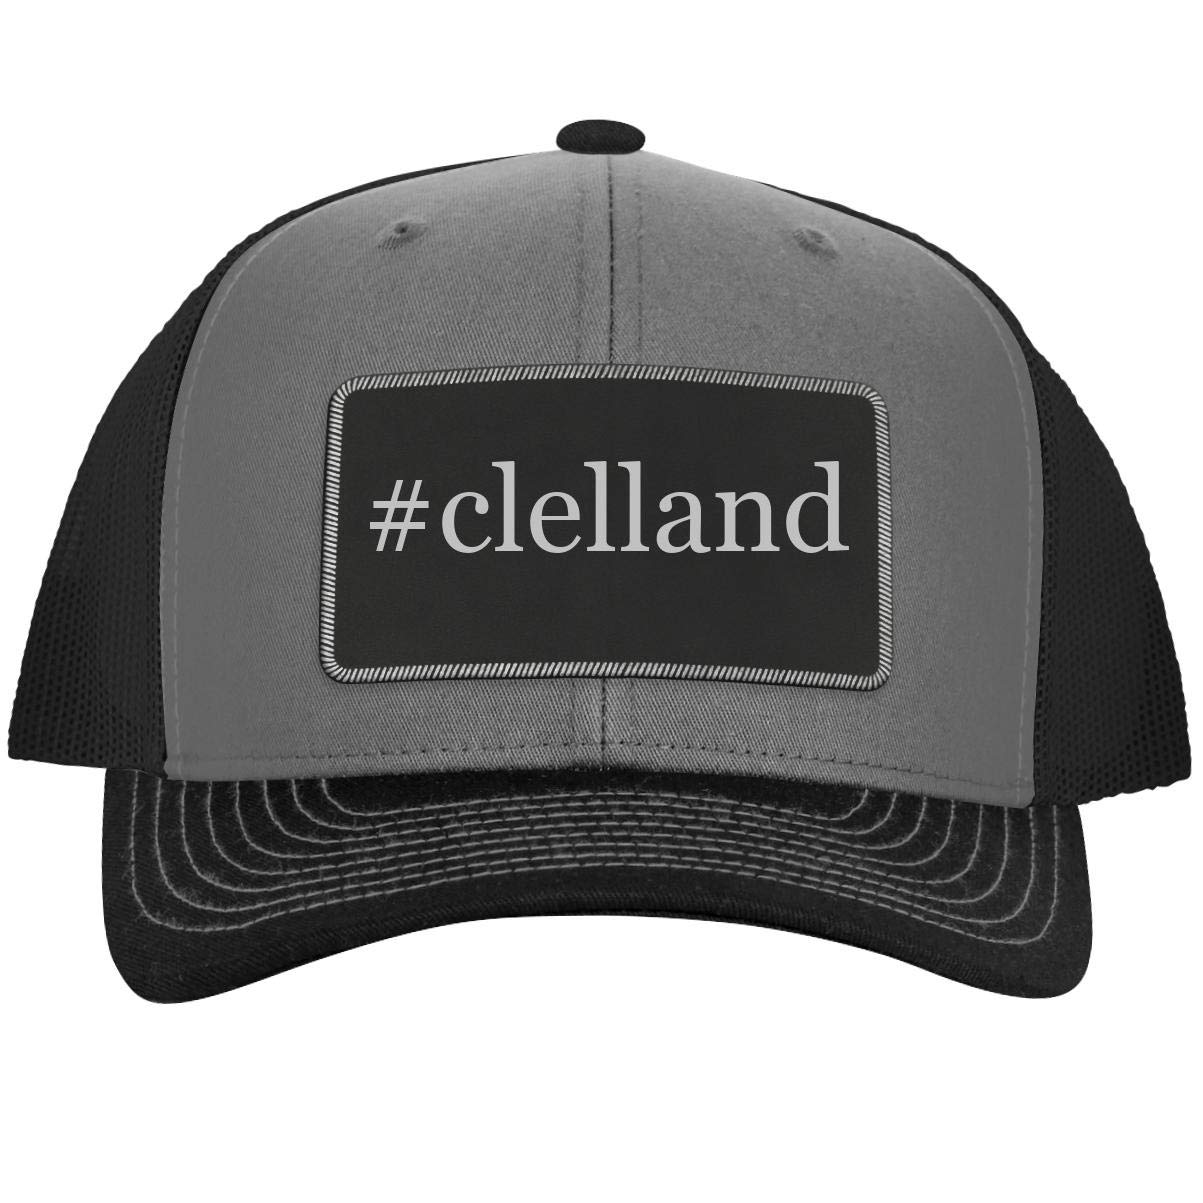 One Legging it Around #beddia Leather Hashtag Black Patch Engraved Trucker Hat